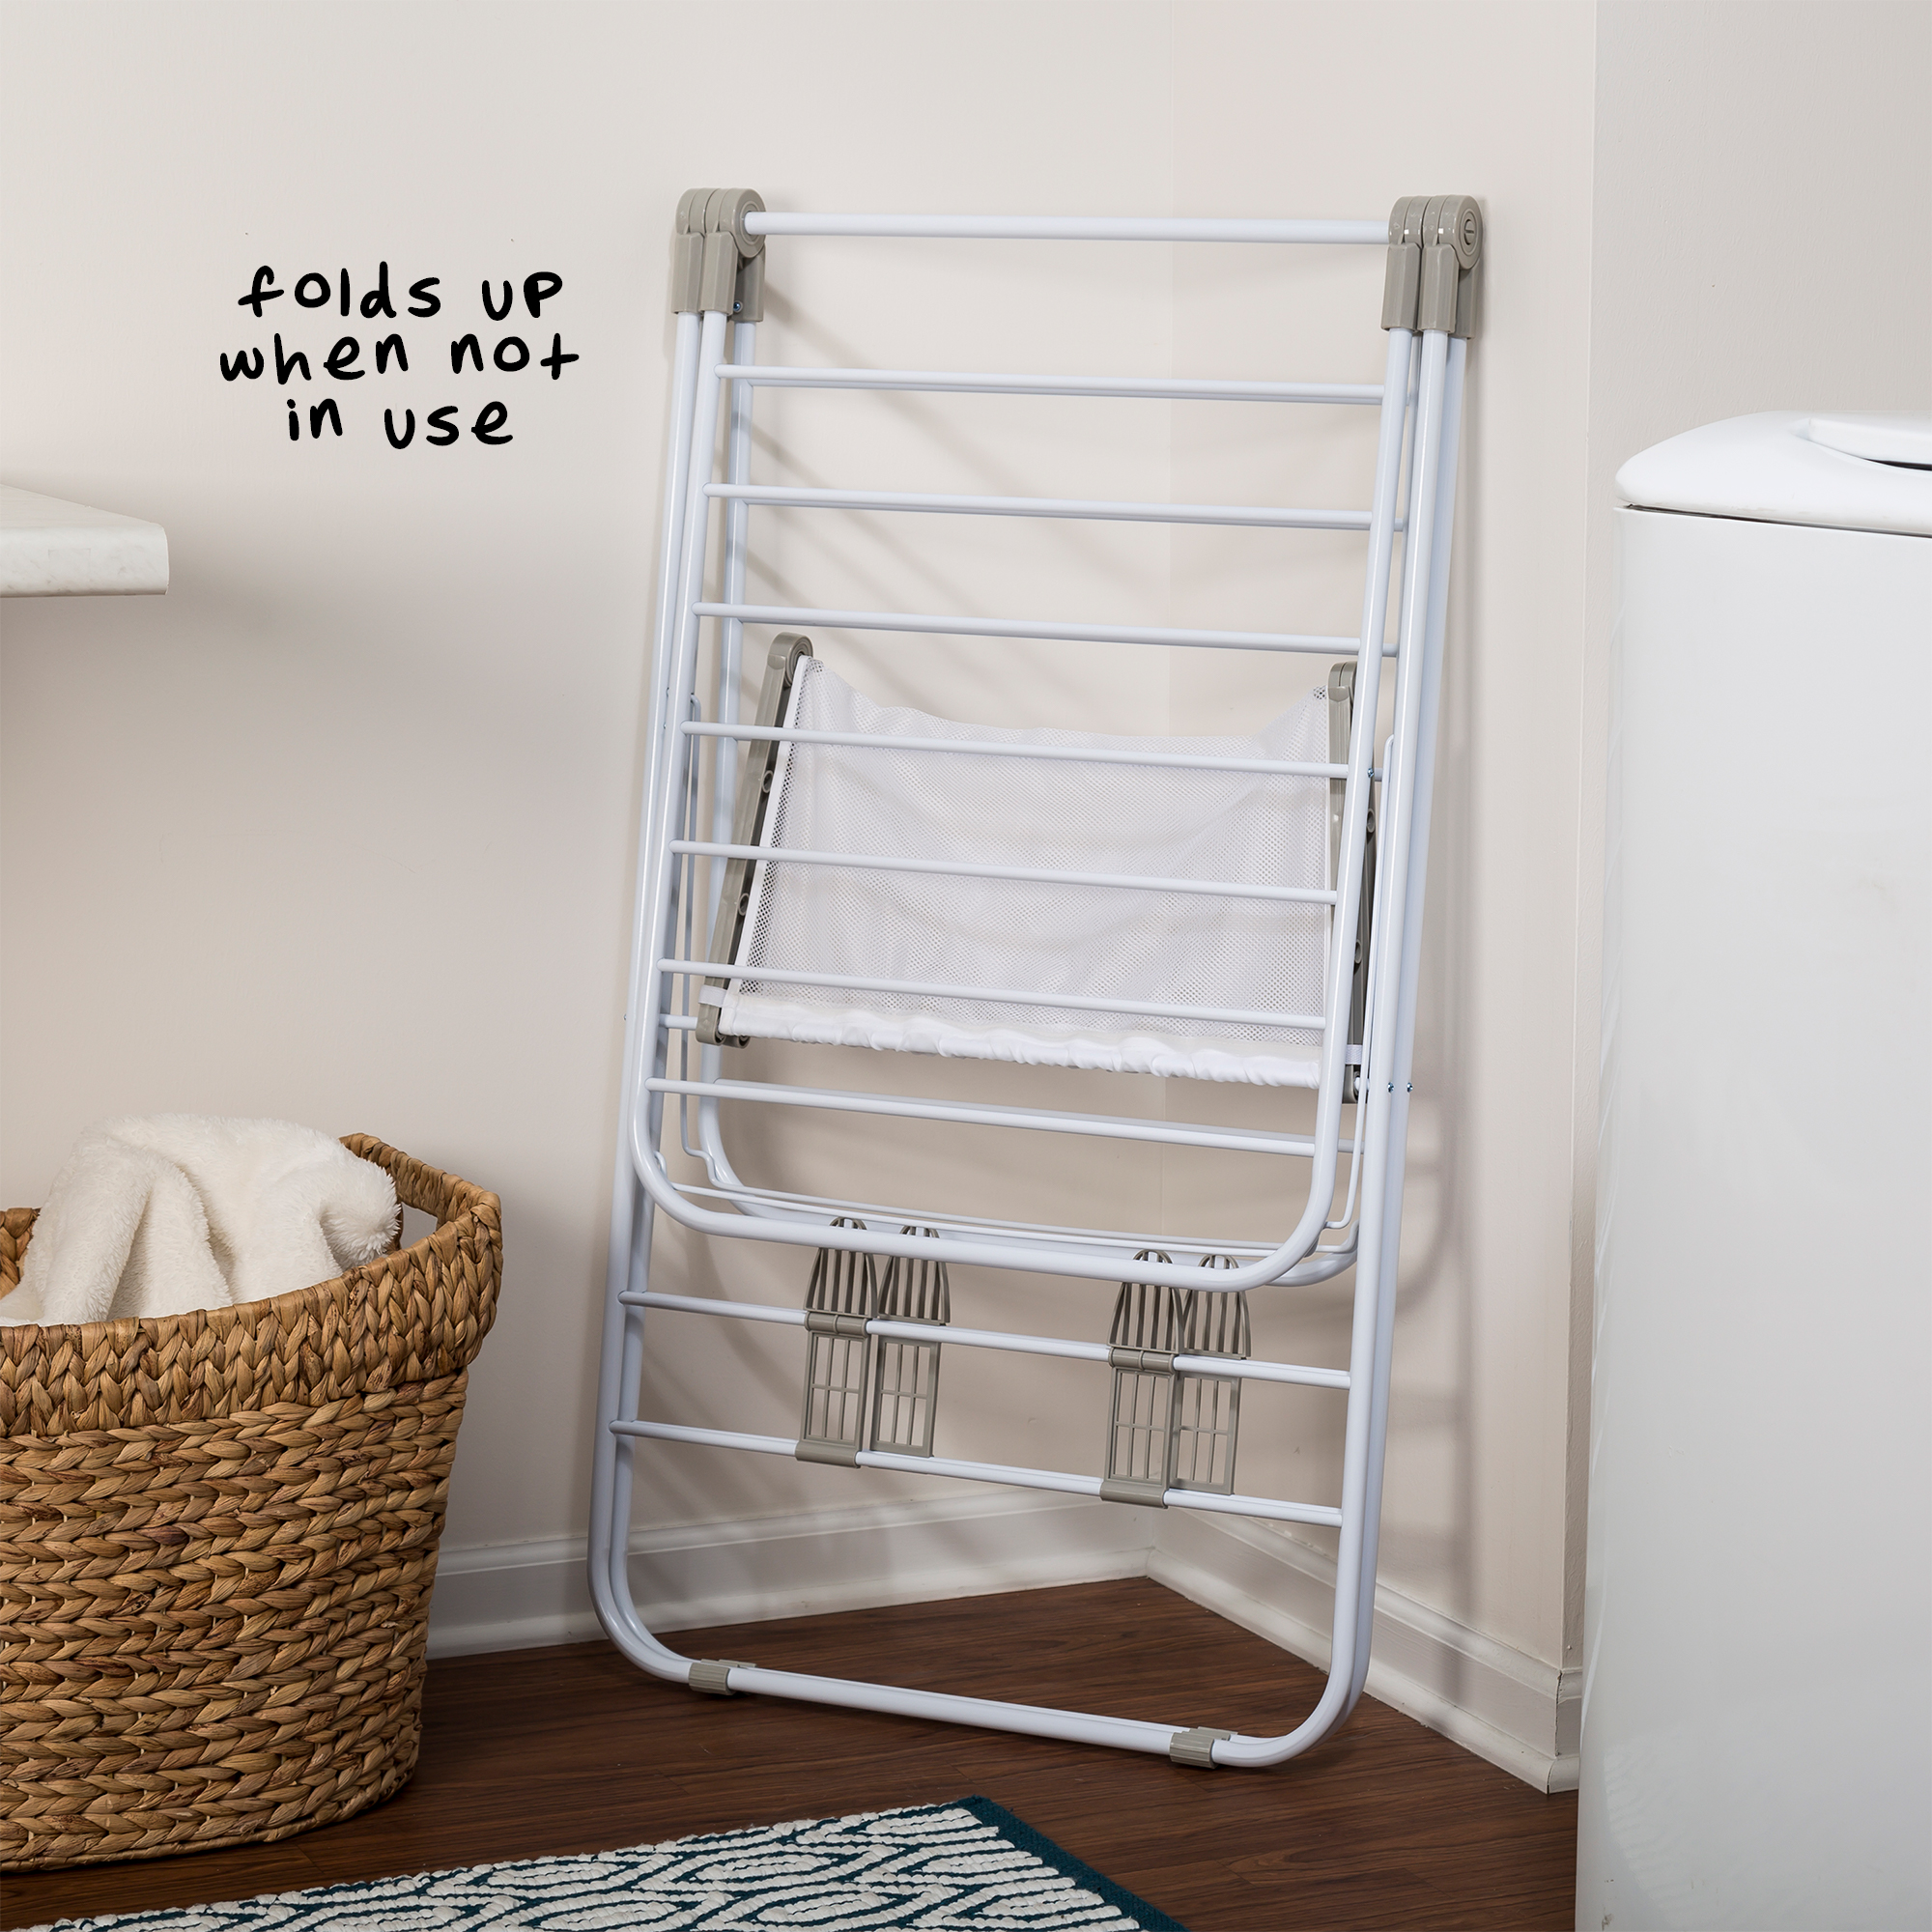 Honey Can Do Heavy Duty Folding Gullwing Laundry Drying Rack, White